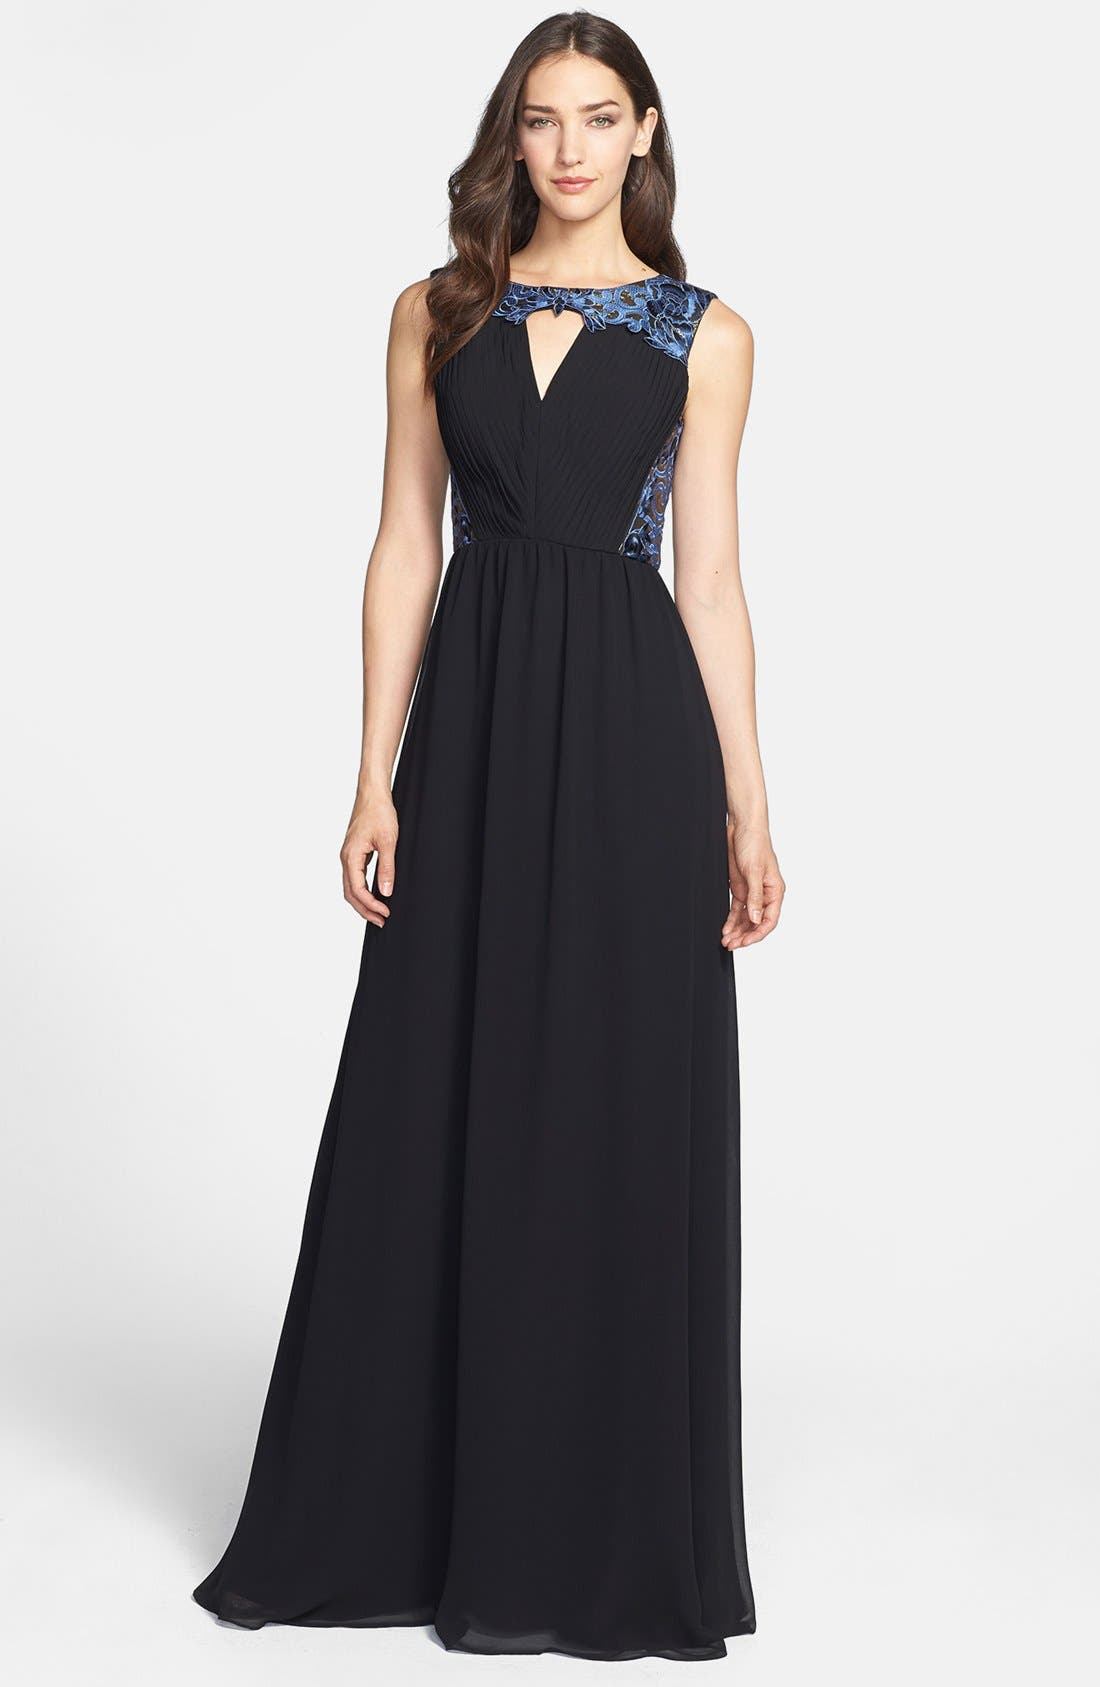 Main Image - ERIN erin fetherston 'Clemence' Embroidery Embellished Gown